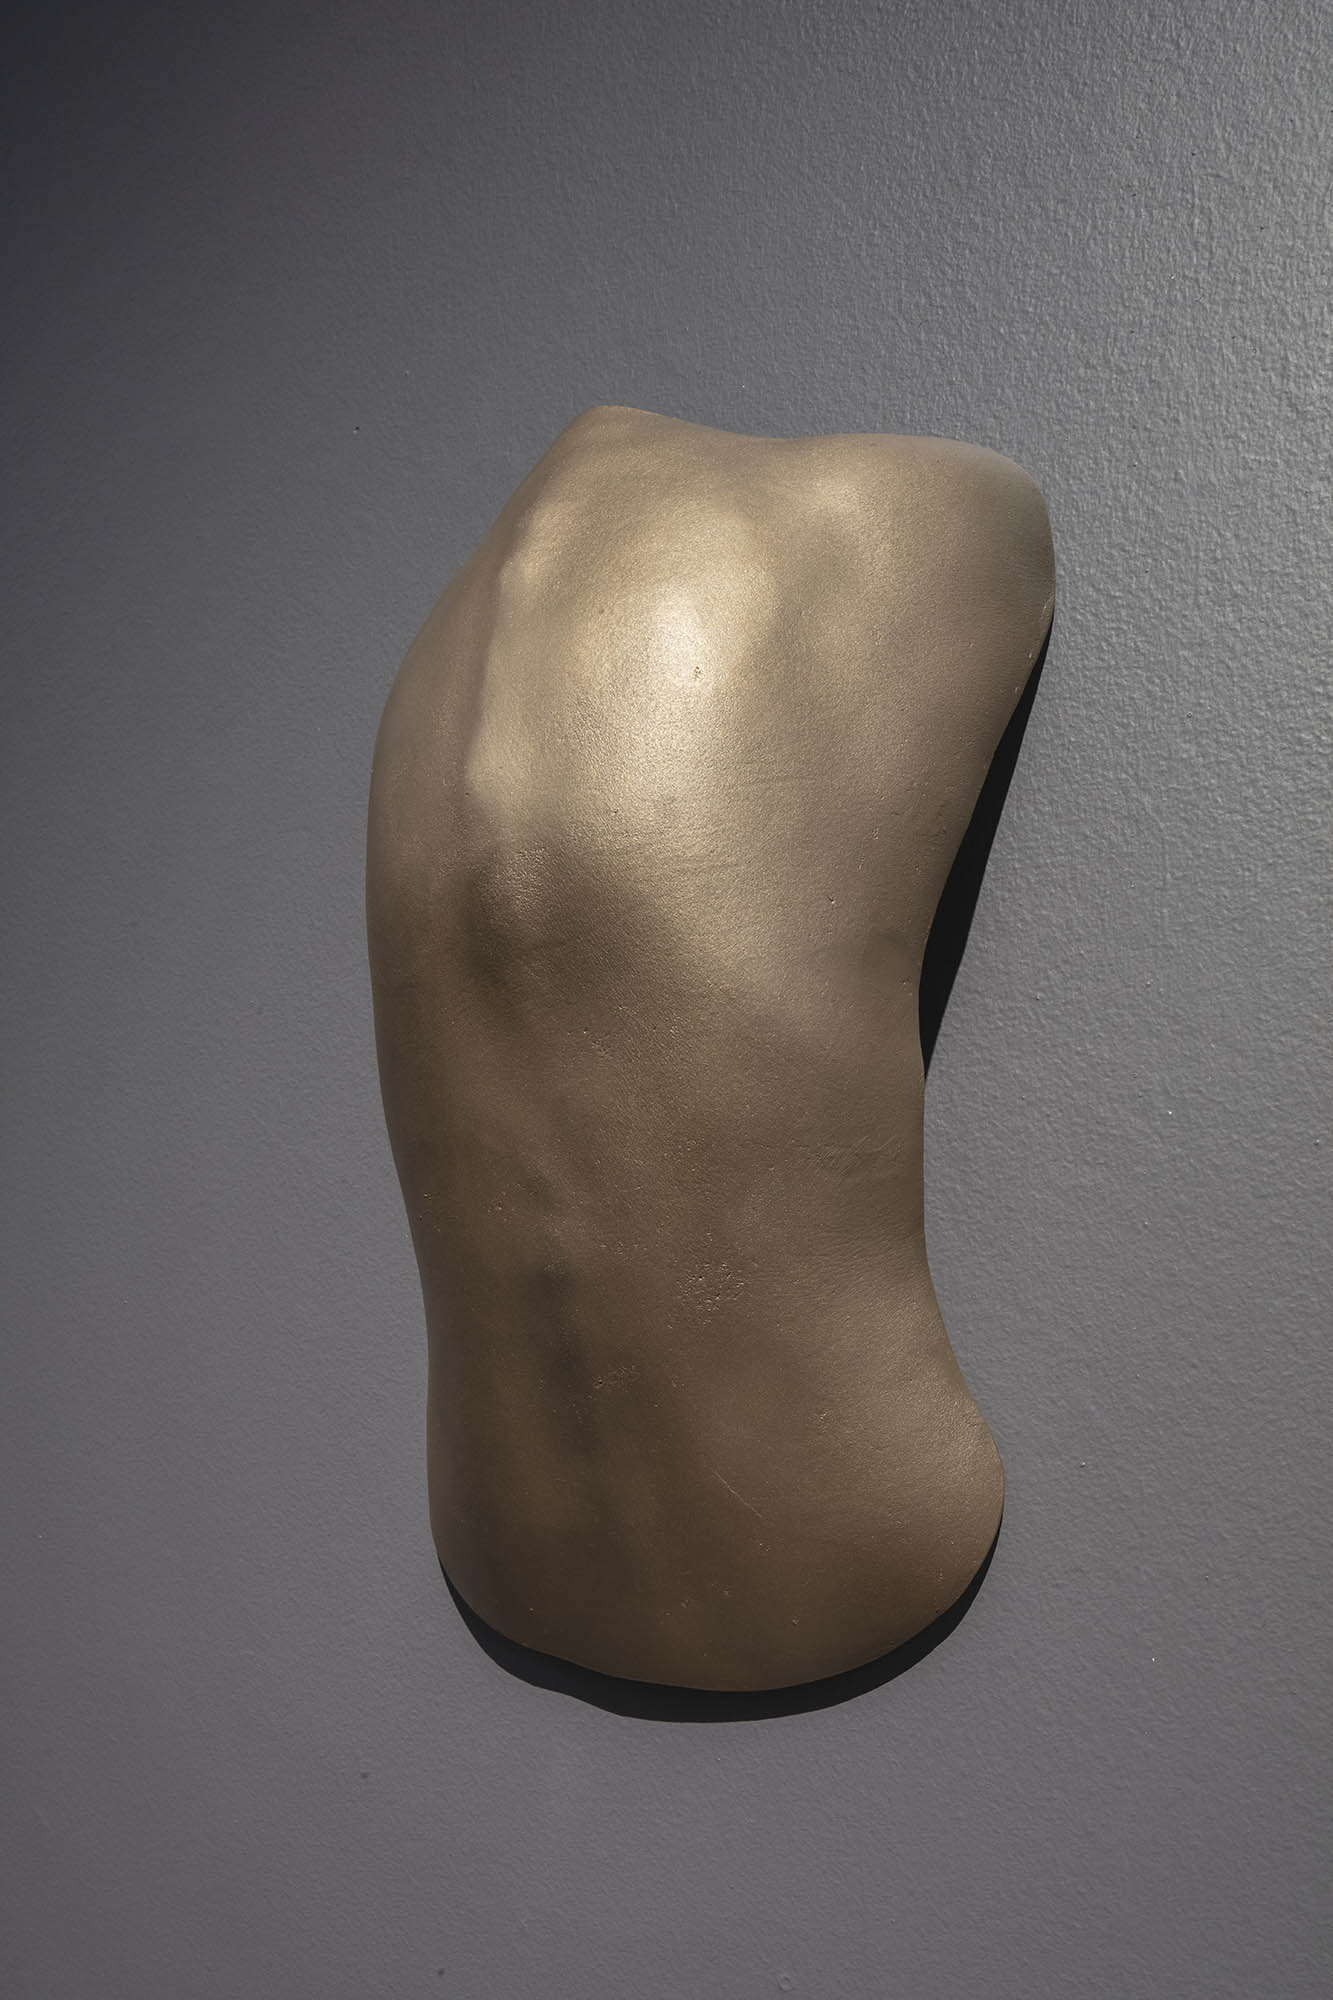 """JULIE RRAP  """"Back to the Wall"""" Shield , 2019  Bronze, edition of 3  59 x 39 x 18 cm"""